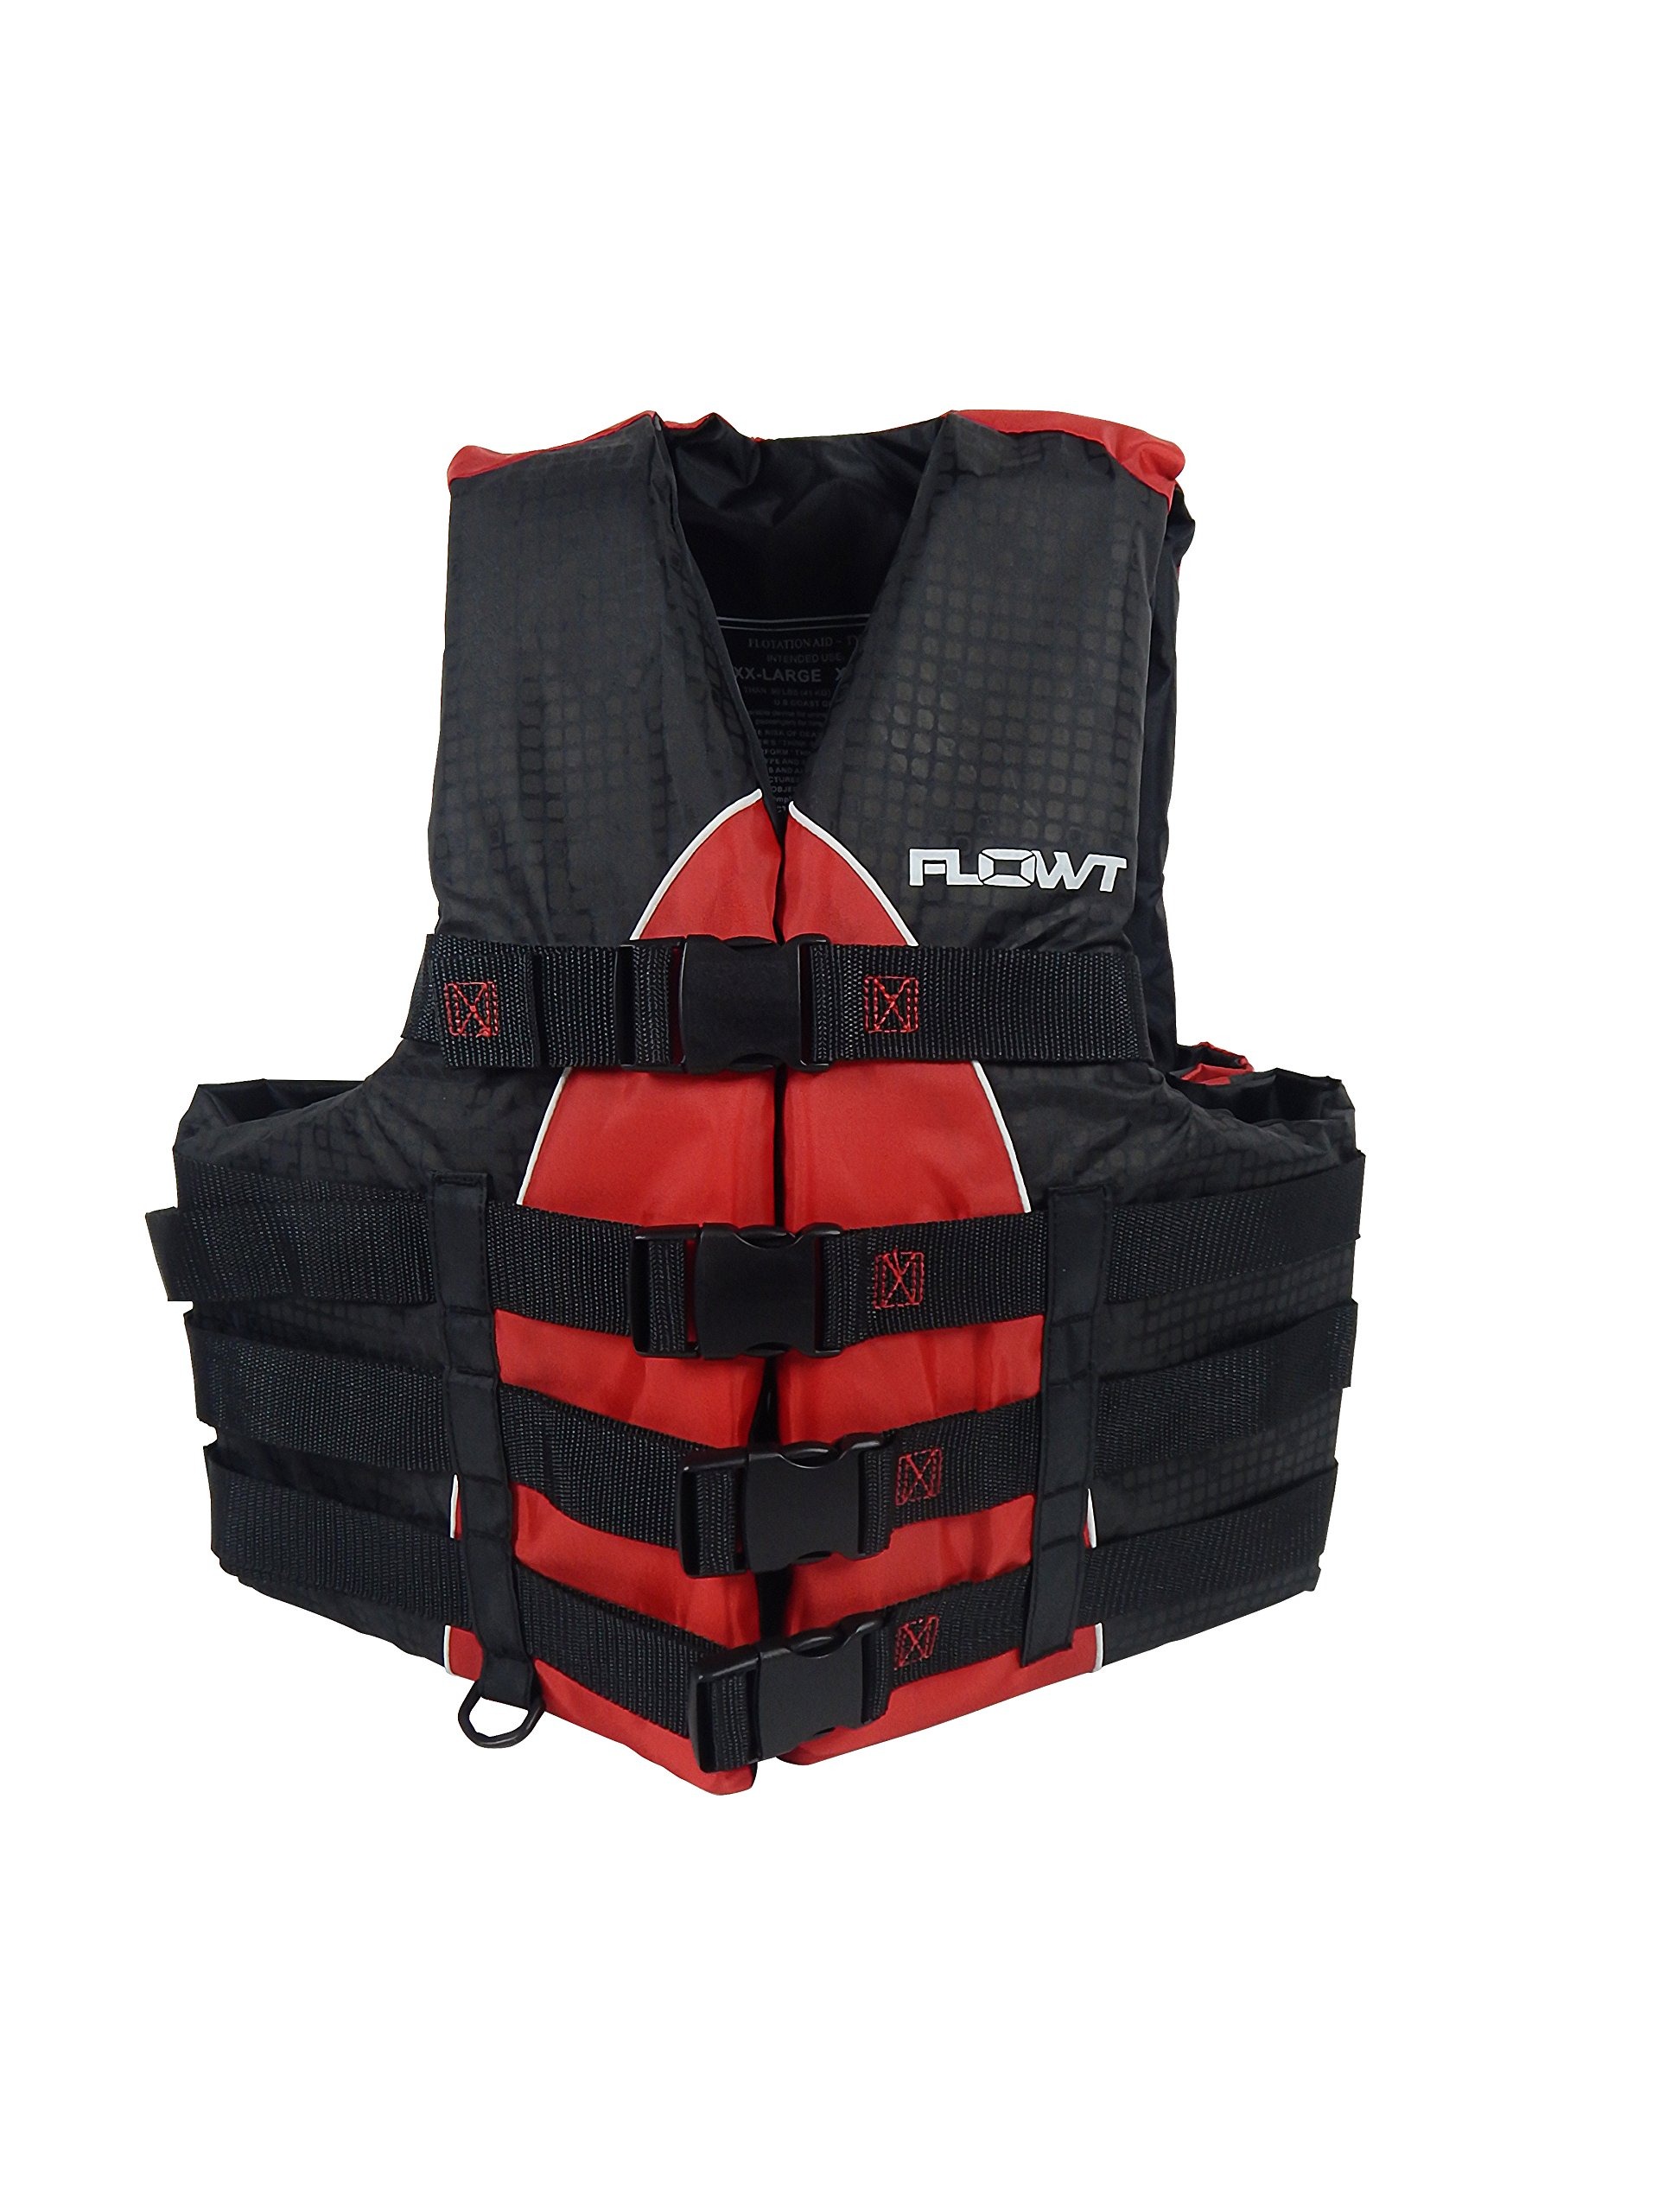 Flowt 40402-2-2X/3X Extreme Sport Life Vest, Type III PFD, Closed Sides, Red, 2X Large / 3X Large, Fits chest sizes 50'' - 60'' by Flowt